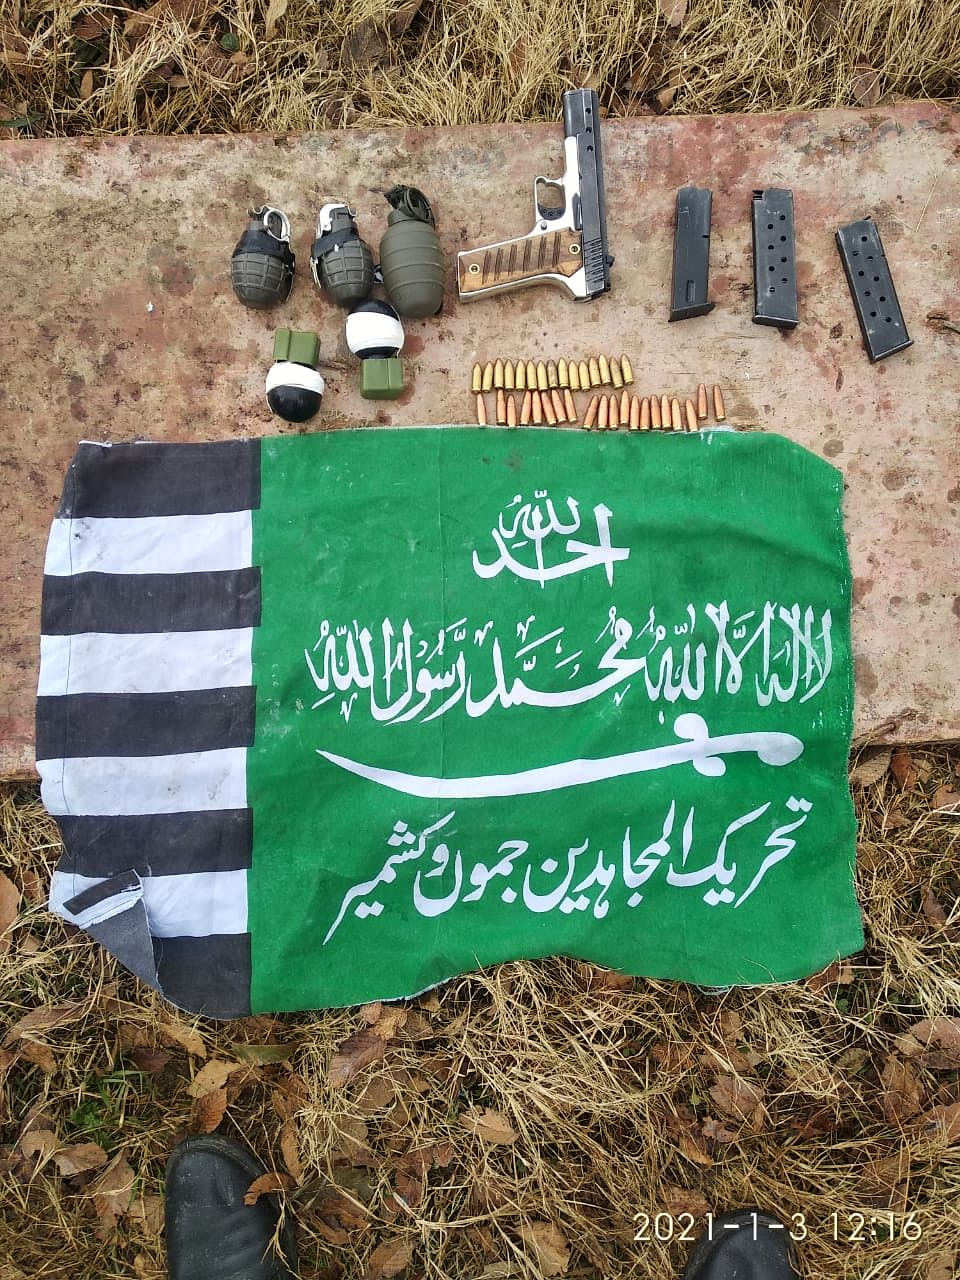 Militant module busted in J&K's Mendhar, arms recovered